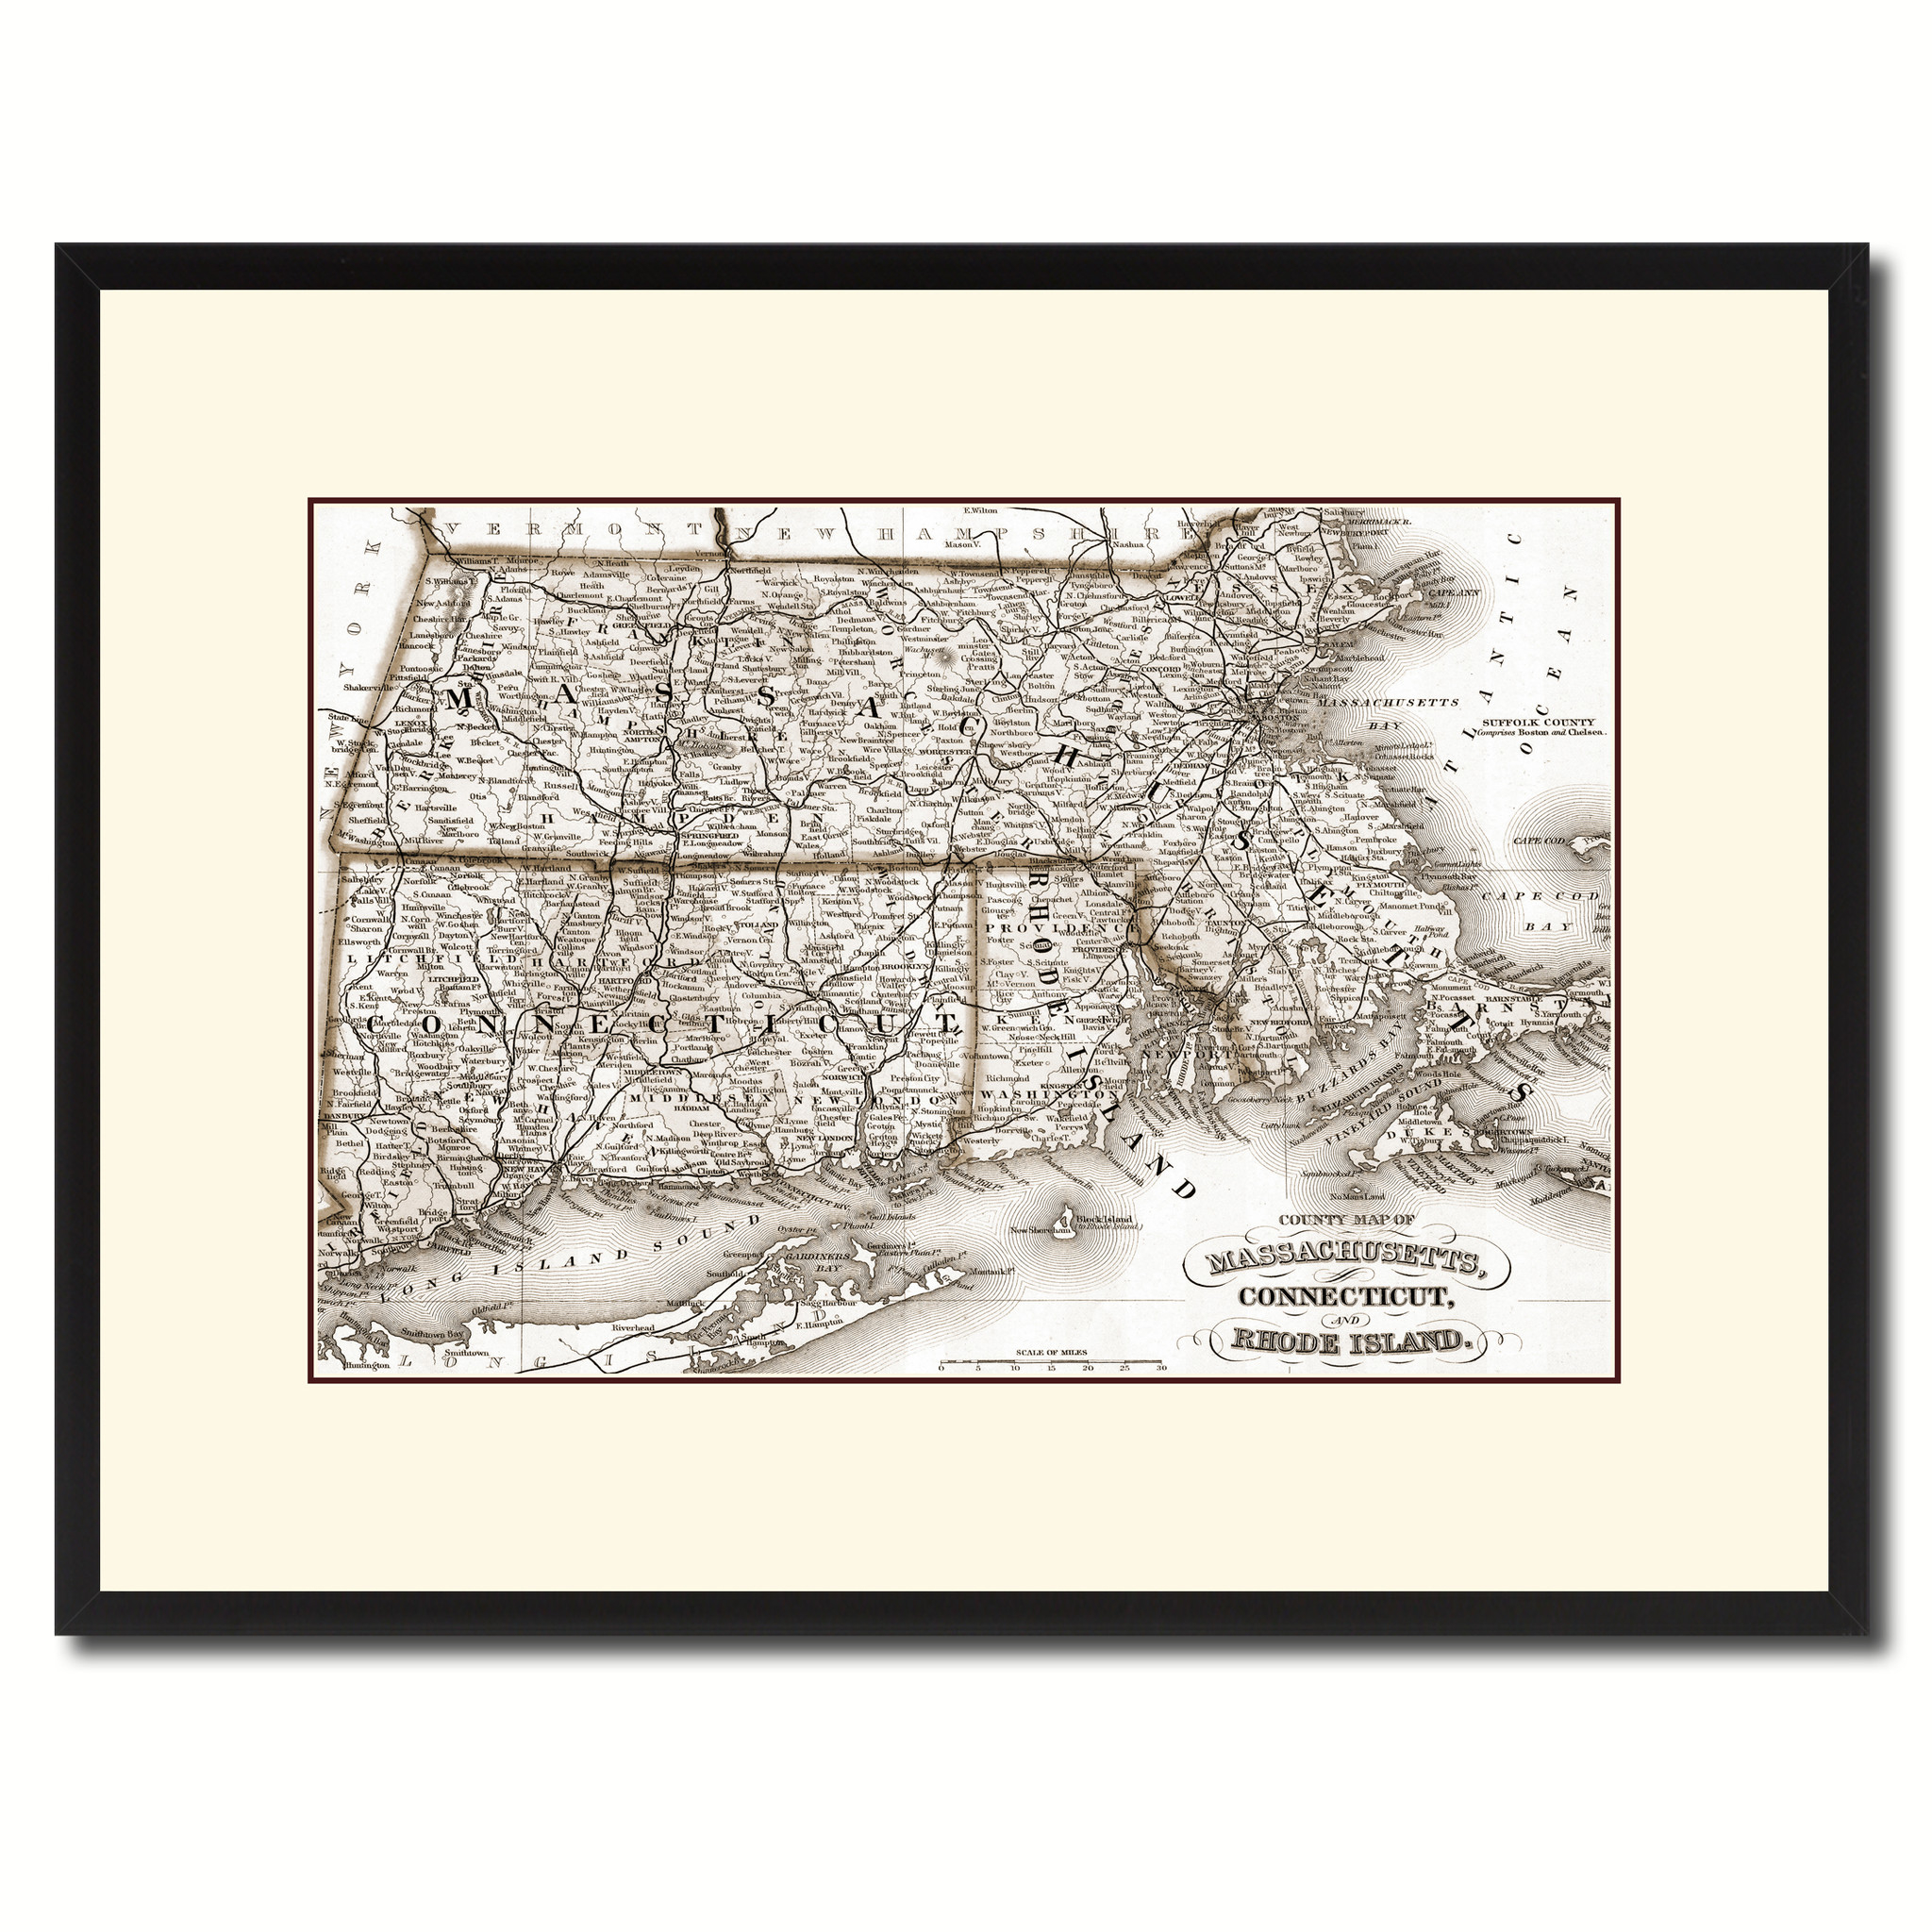 "Massachusetts Connecticut Rhode Island Vintage Sepia Map Canvas Print, Picture Frame Gifts Home Decor Wall Art Decoration - 16"" x 21\"""